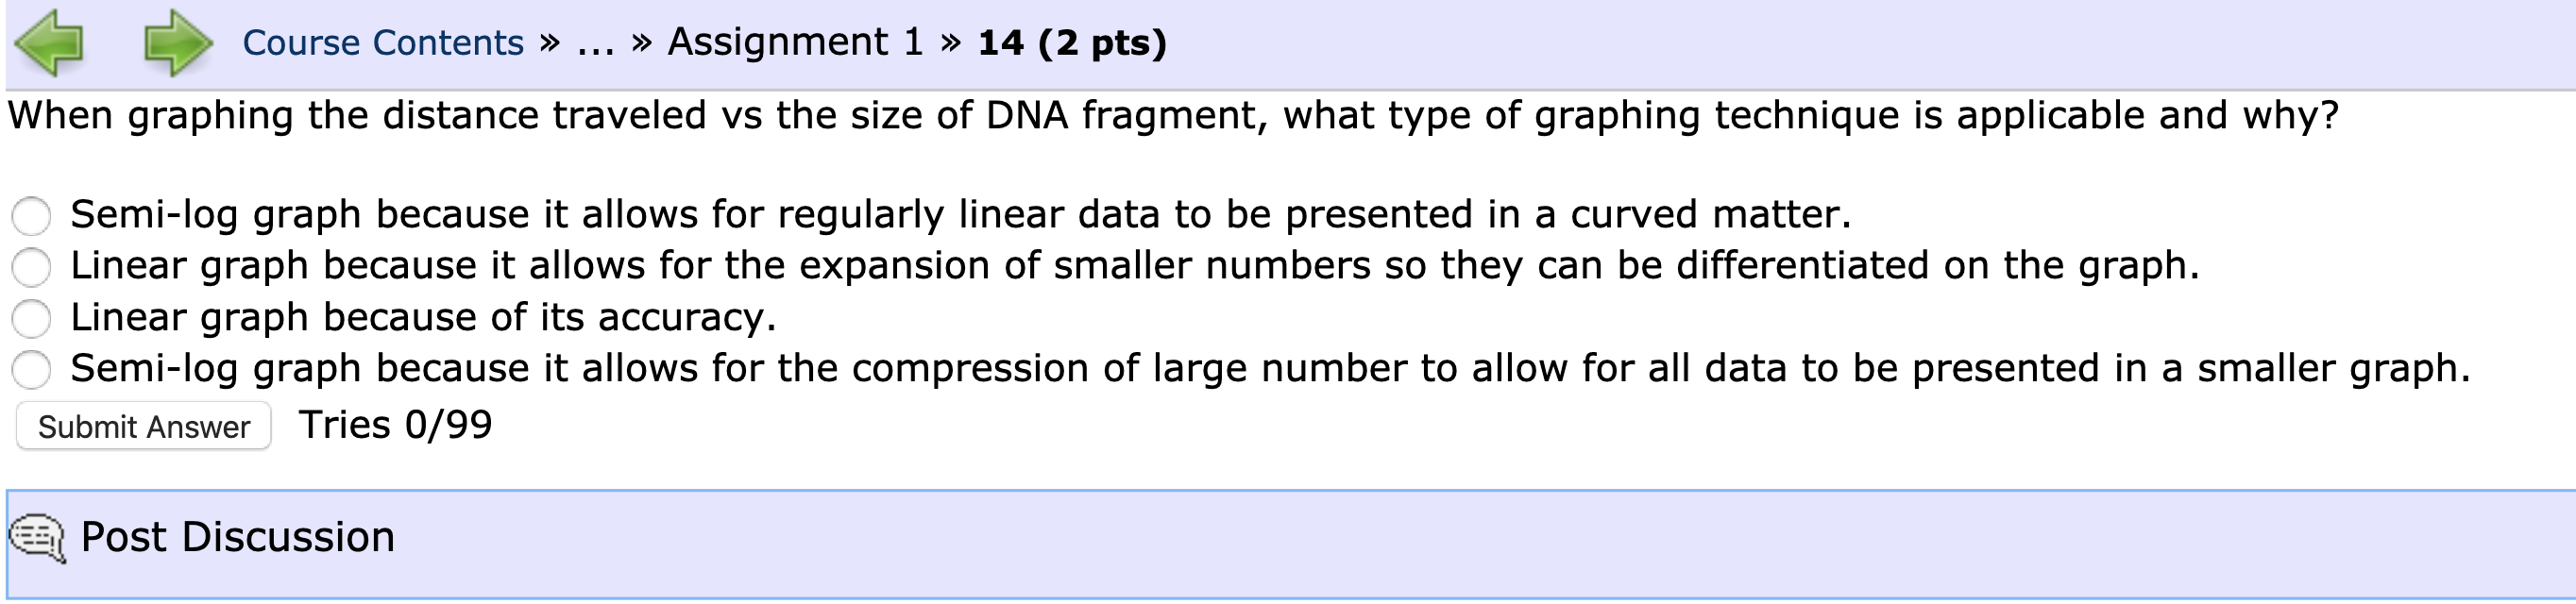 Course Contents » ... » Assignment 1 » 14 (2 pts) When graphing the distance traveled vs the size of DNA fragment, what type